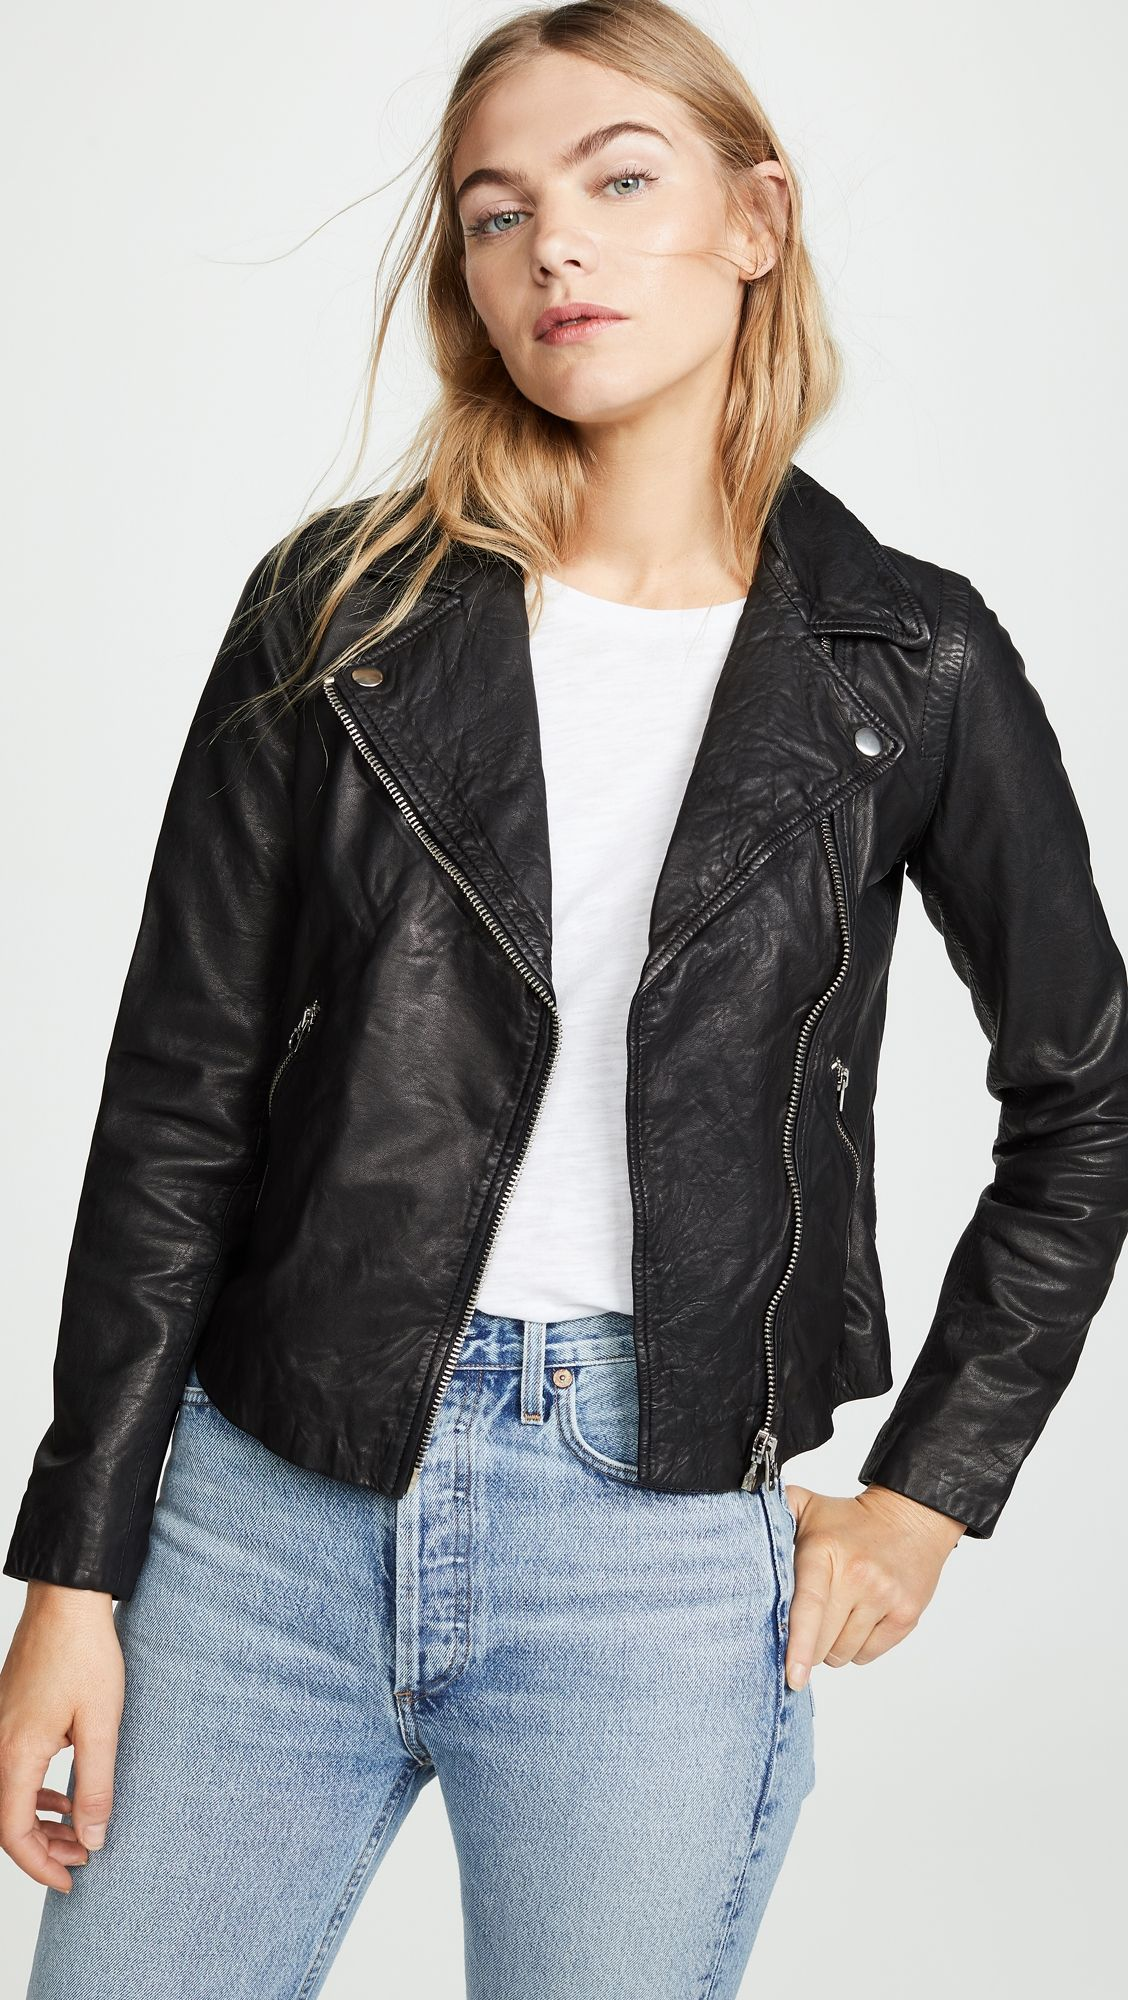 Madewell Washed Leather Motorcycle Jacket Washed Leather Jacket Black Leather Biker Jacket Stylish Fall Outfits [ 2000 x 1128 Pixel ]